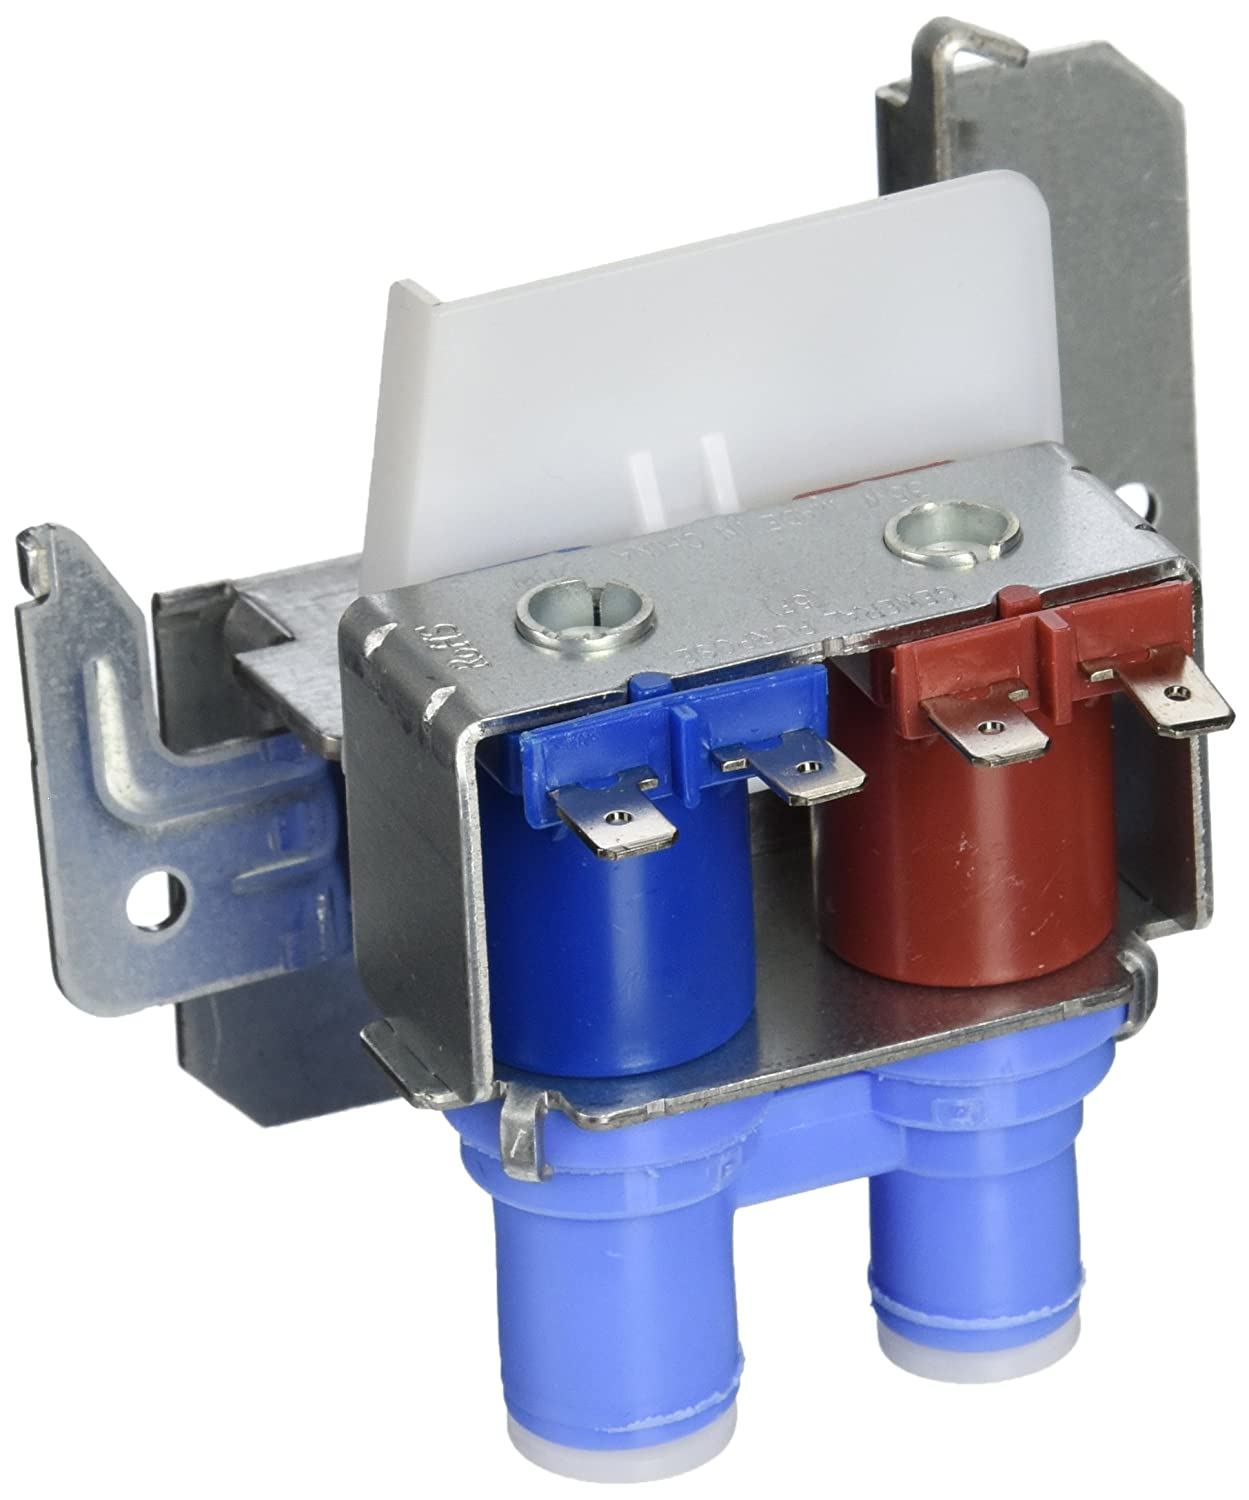 Enrilior DC 12V DN20 G3//4 1 in 4 Out Plastic Electromagnetic Valve Normally Closed Water Drain Valve